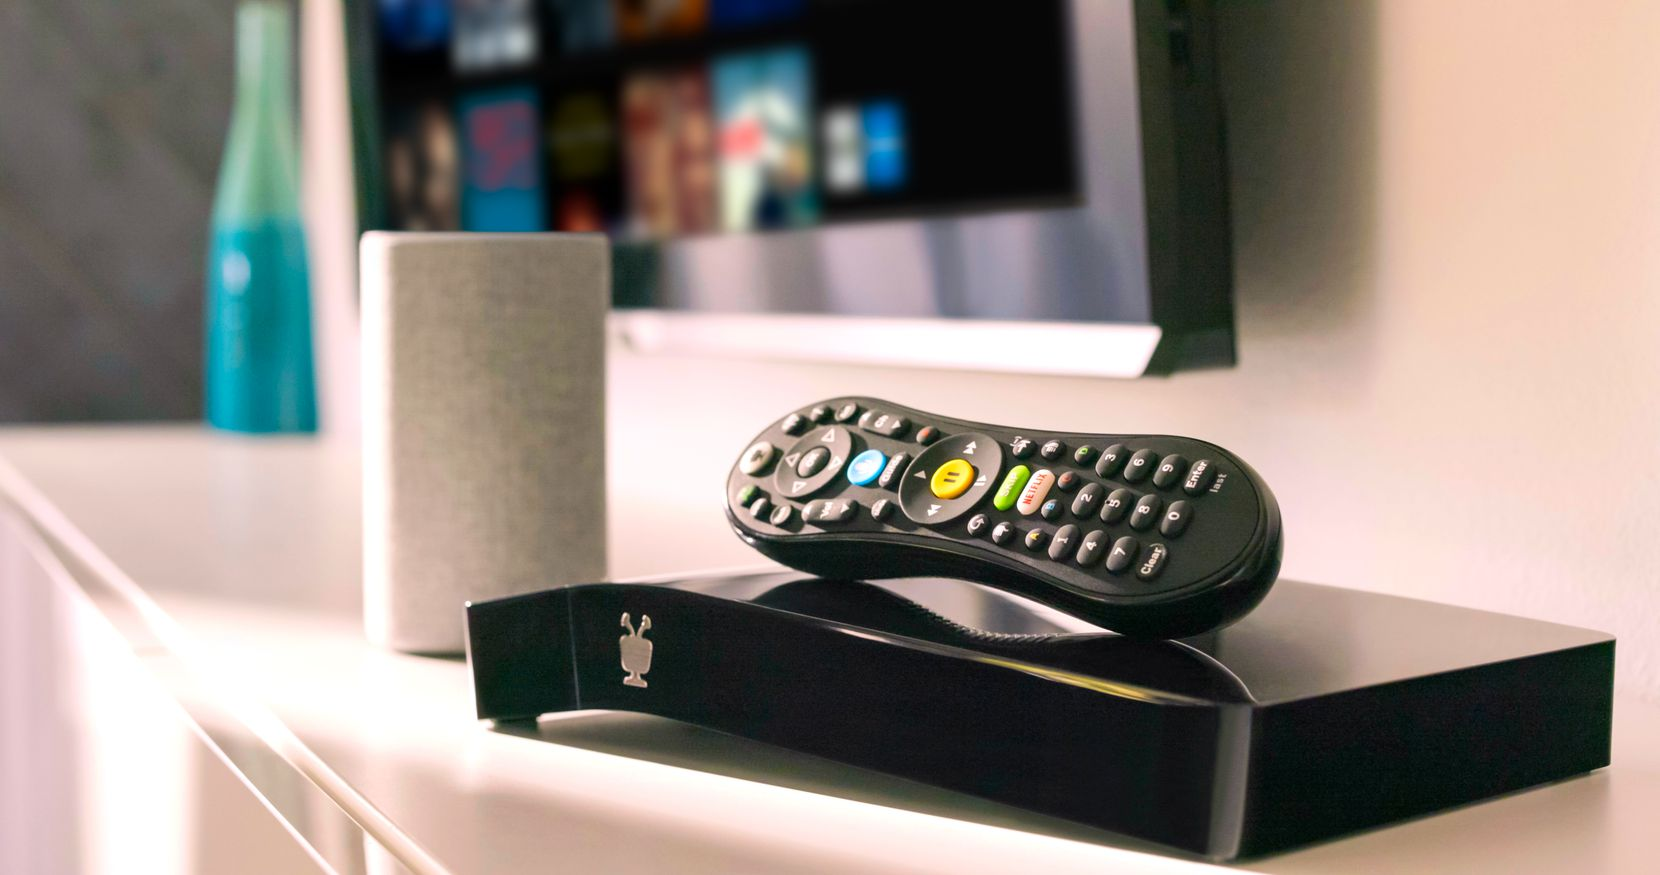 TiVo Bolt over-the-air DVR.